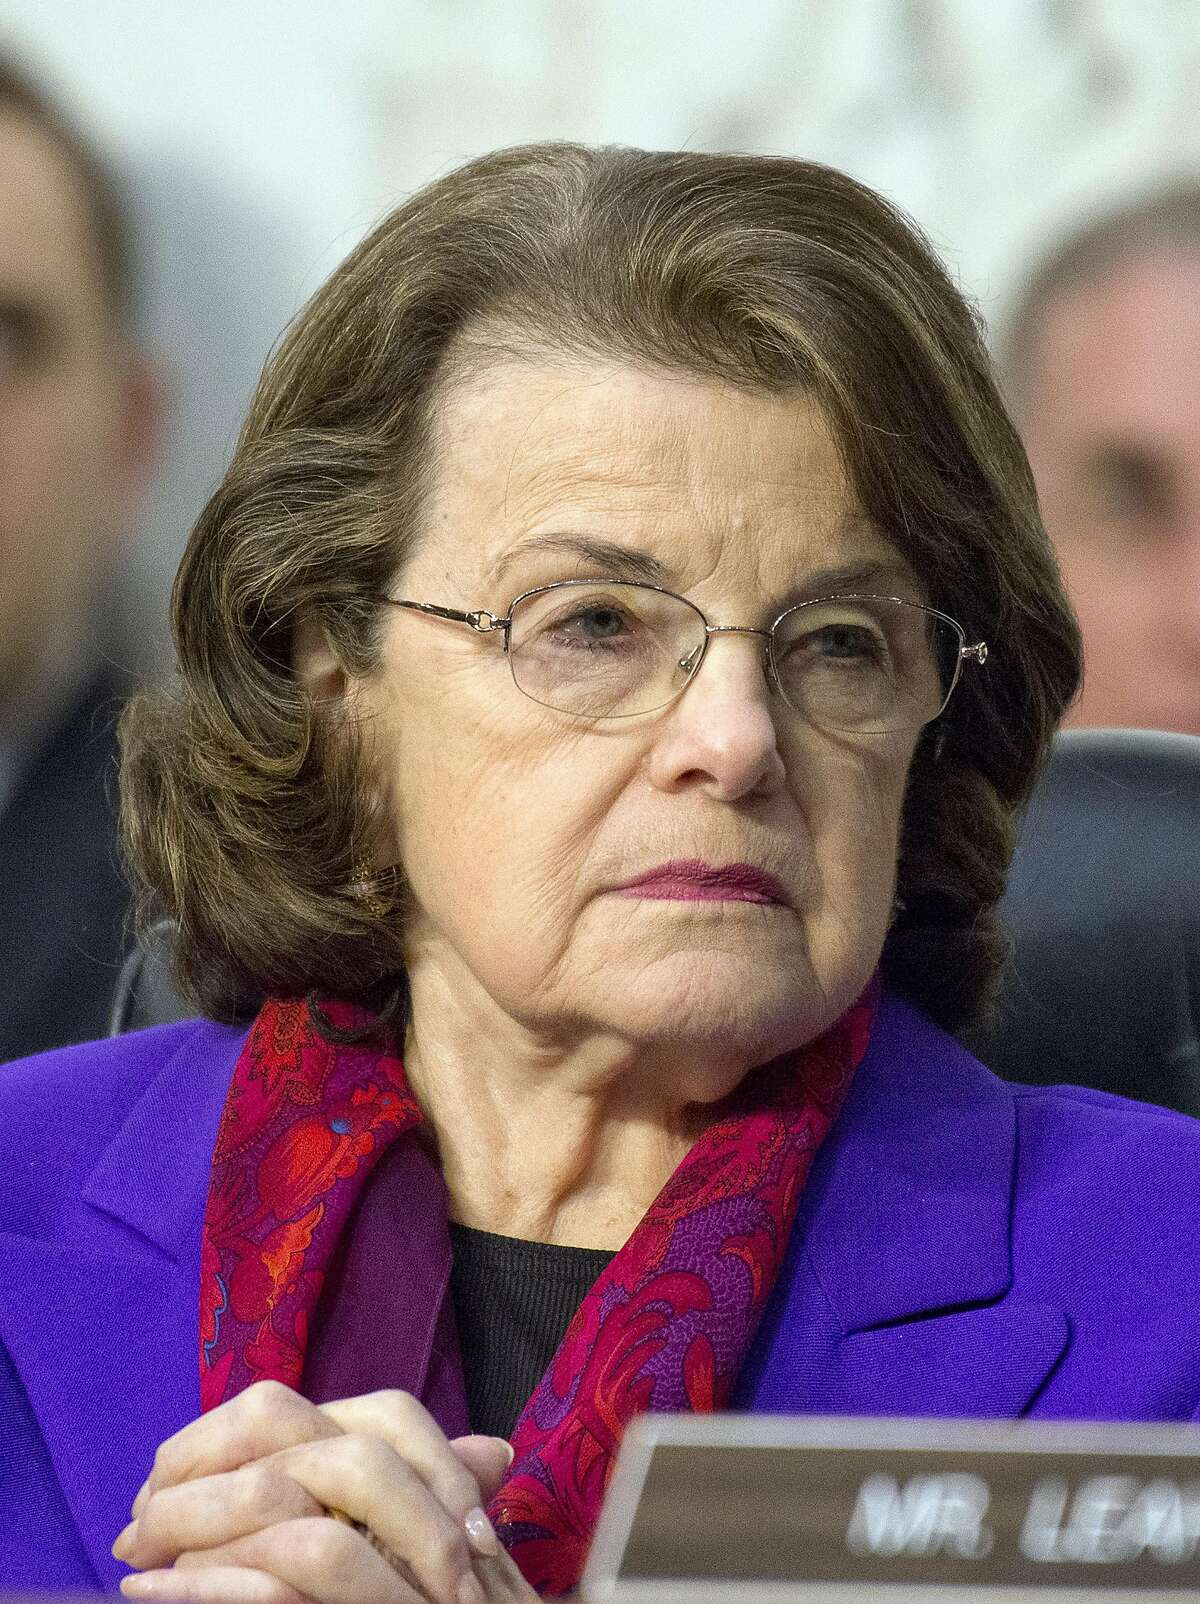 Sen. Dianne Feinstein (D-Calif.), as ranking member of the Senate Judiciary Committee, listens as Neil Gorsuch testifies before the committee on his nomination as Associate Justice of the Supreme Court, on Capitol Hill on March 22, 2017, in Washington, D.C. (Ron Sachs/CNP/Sipa USA/TNS)